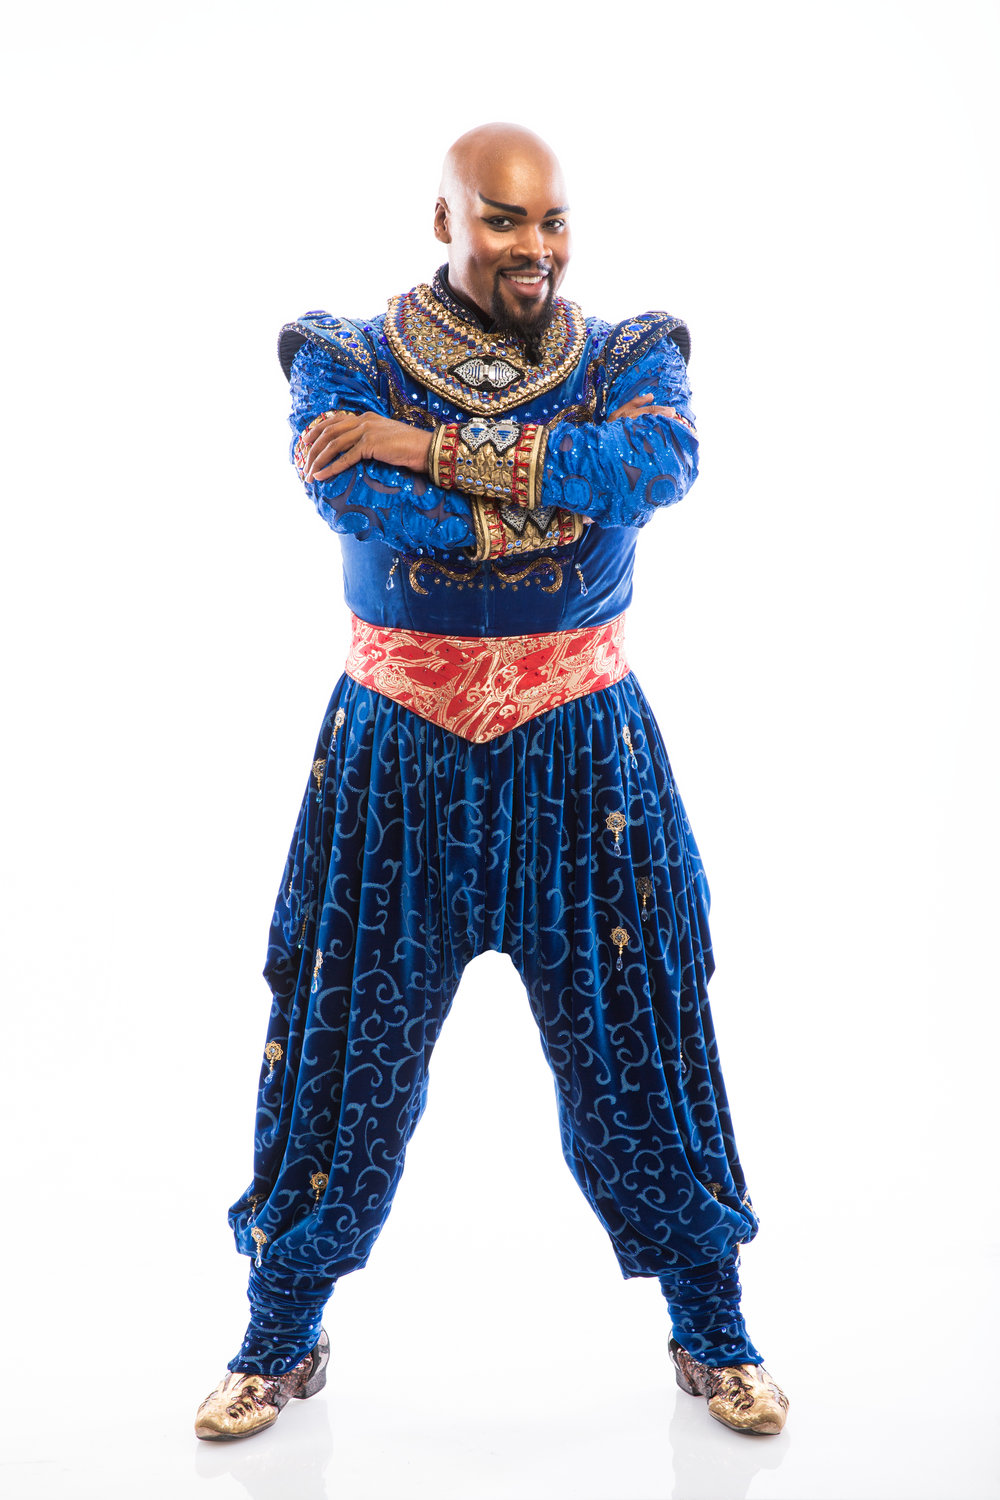 Michael_James_Scott_as_GENIE_by_Matthew_Murphy_2.jpg